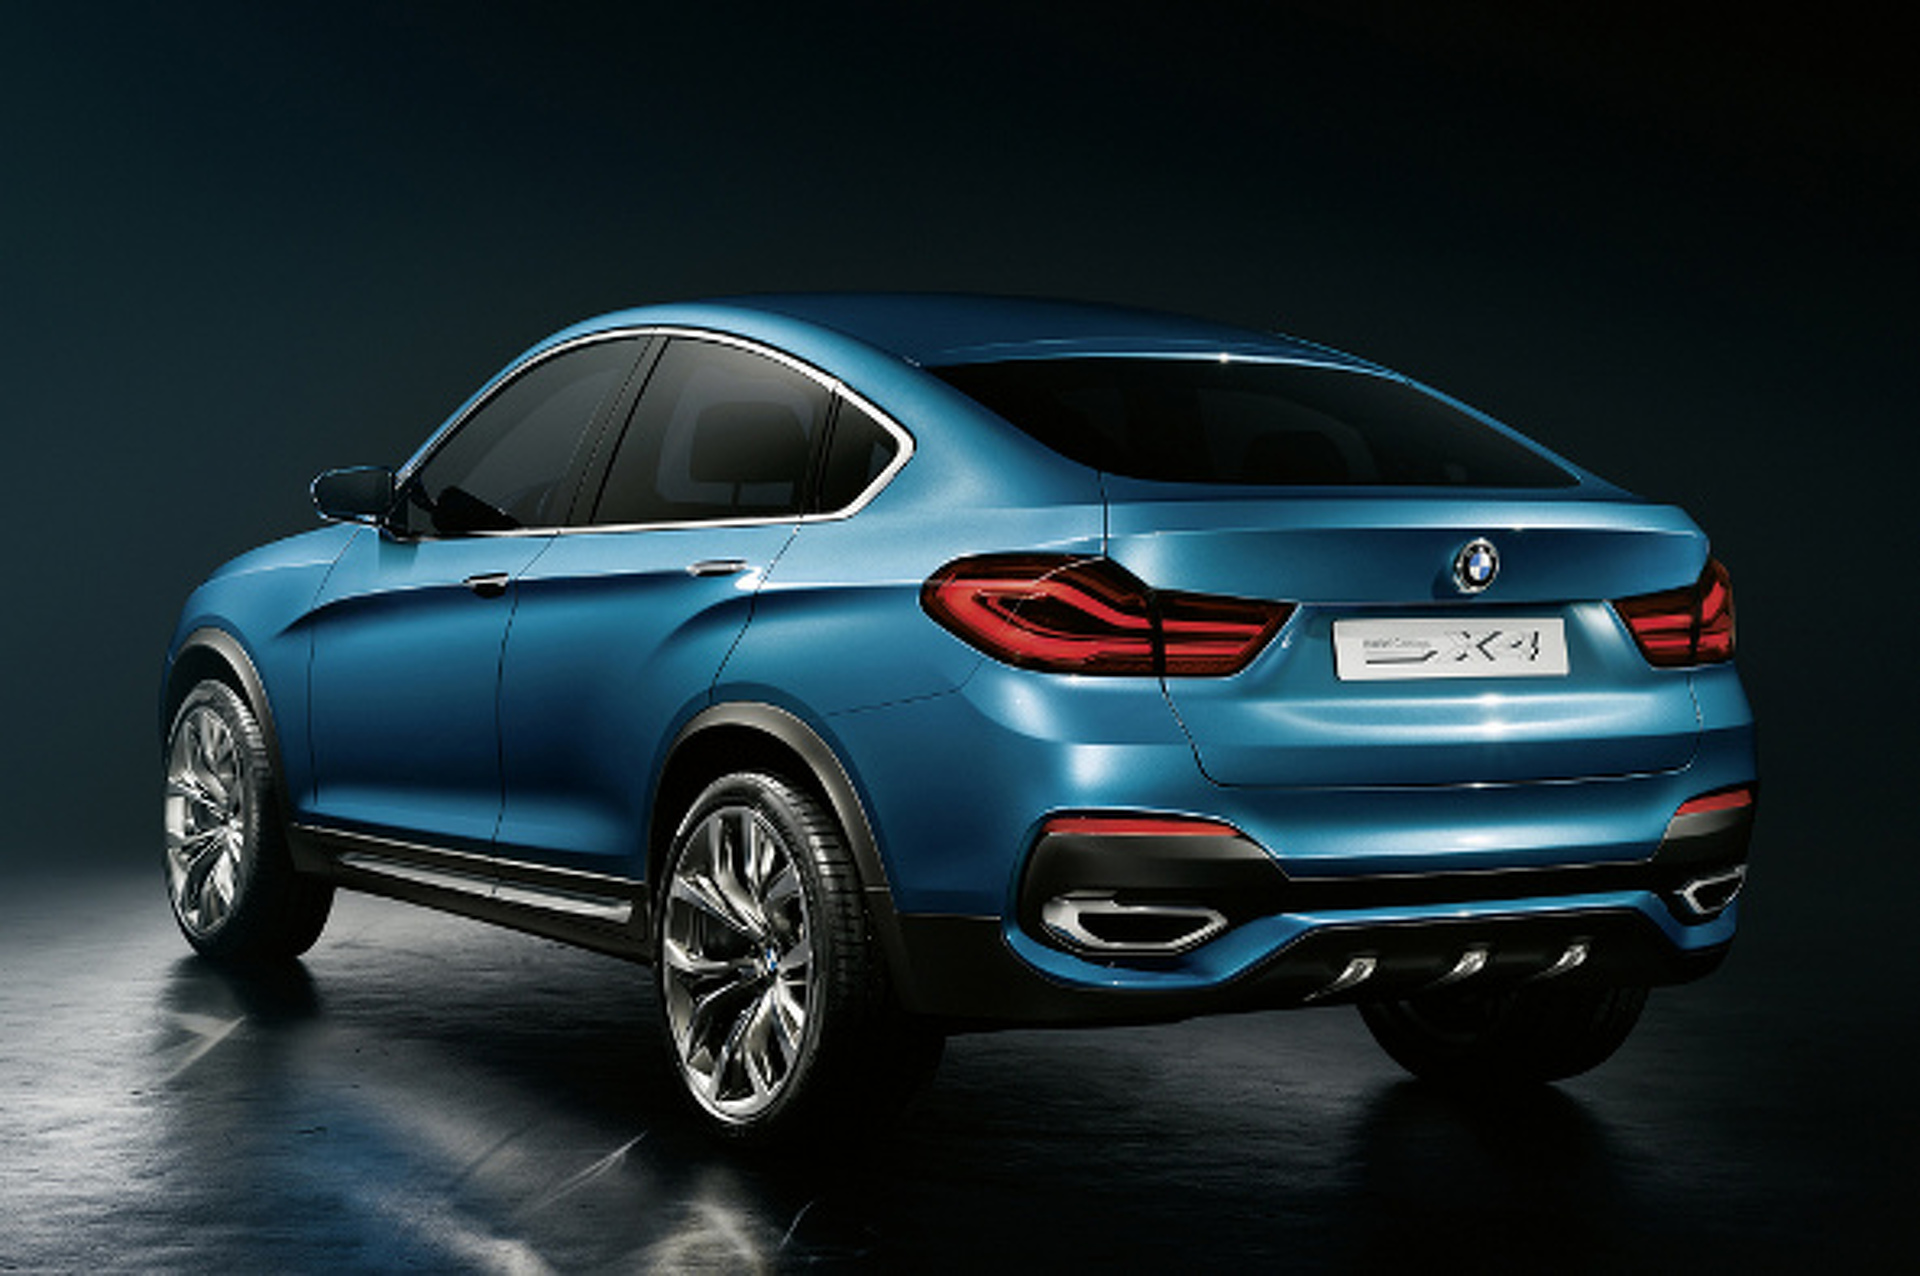 2014 BMW X4 Concept: Useless Has Been Downsized